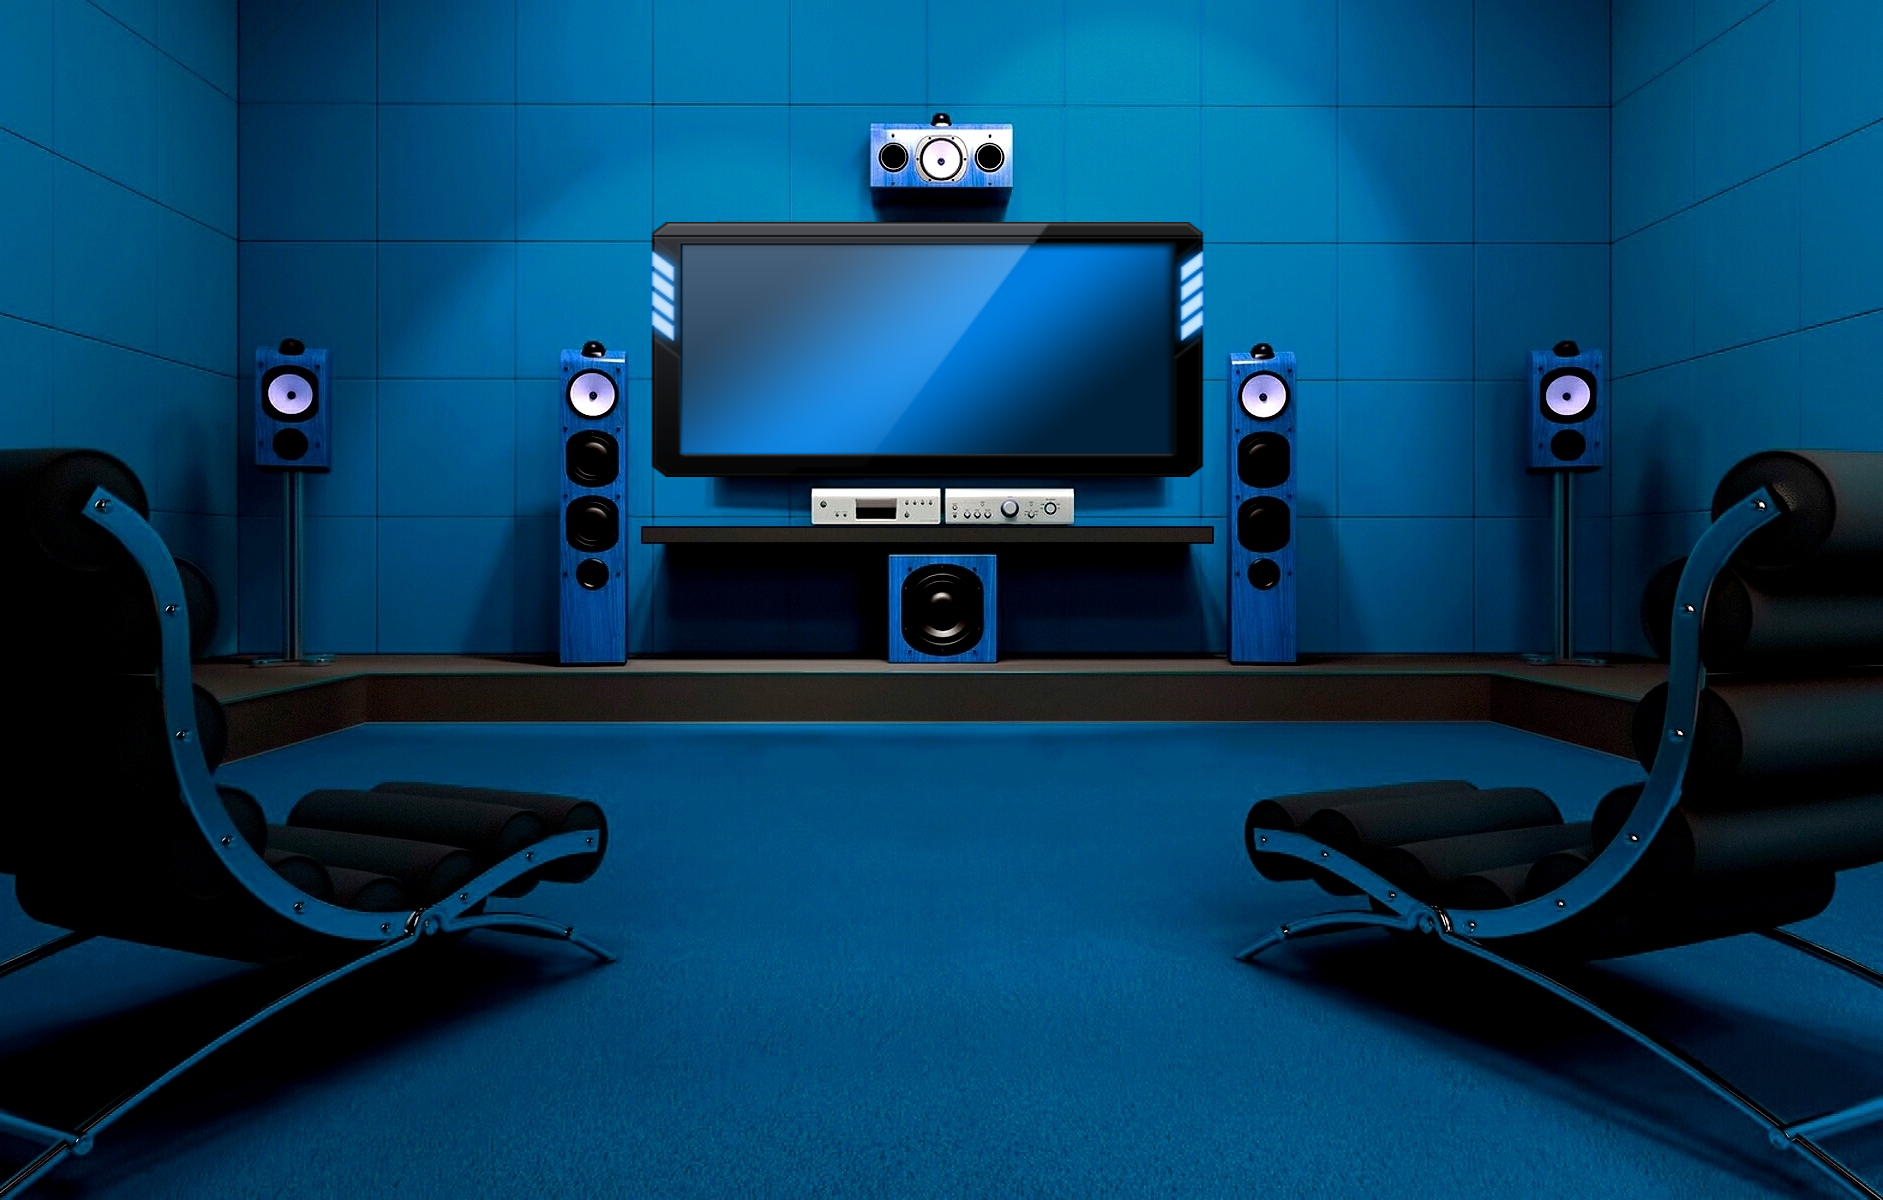 hi tech home theater ati technology background wallpapers on | hd